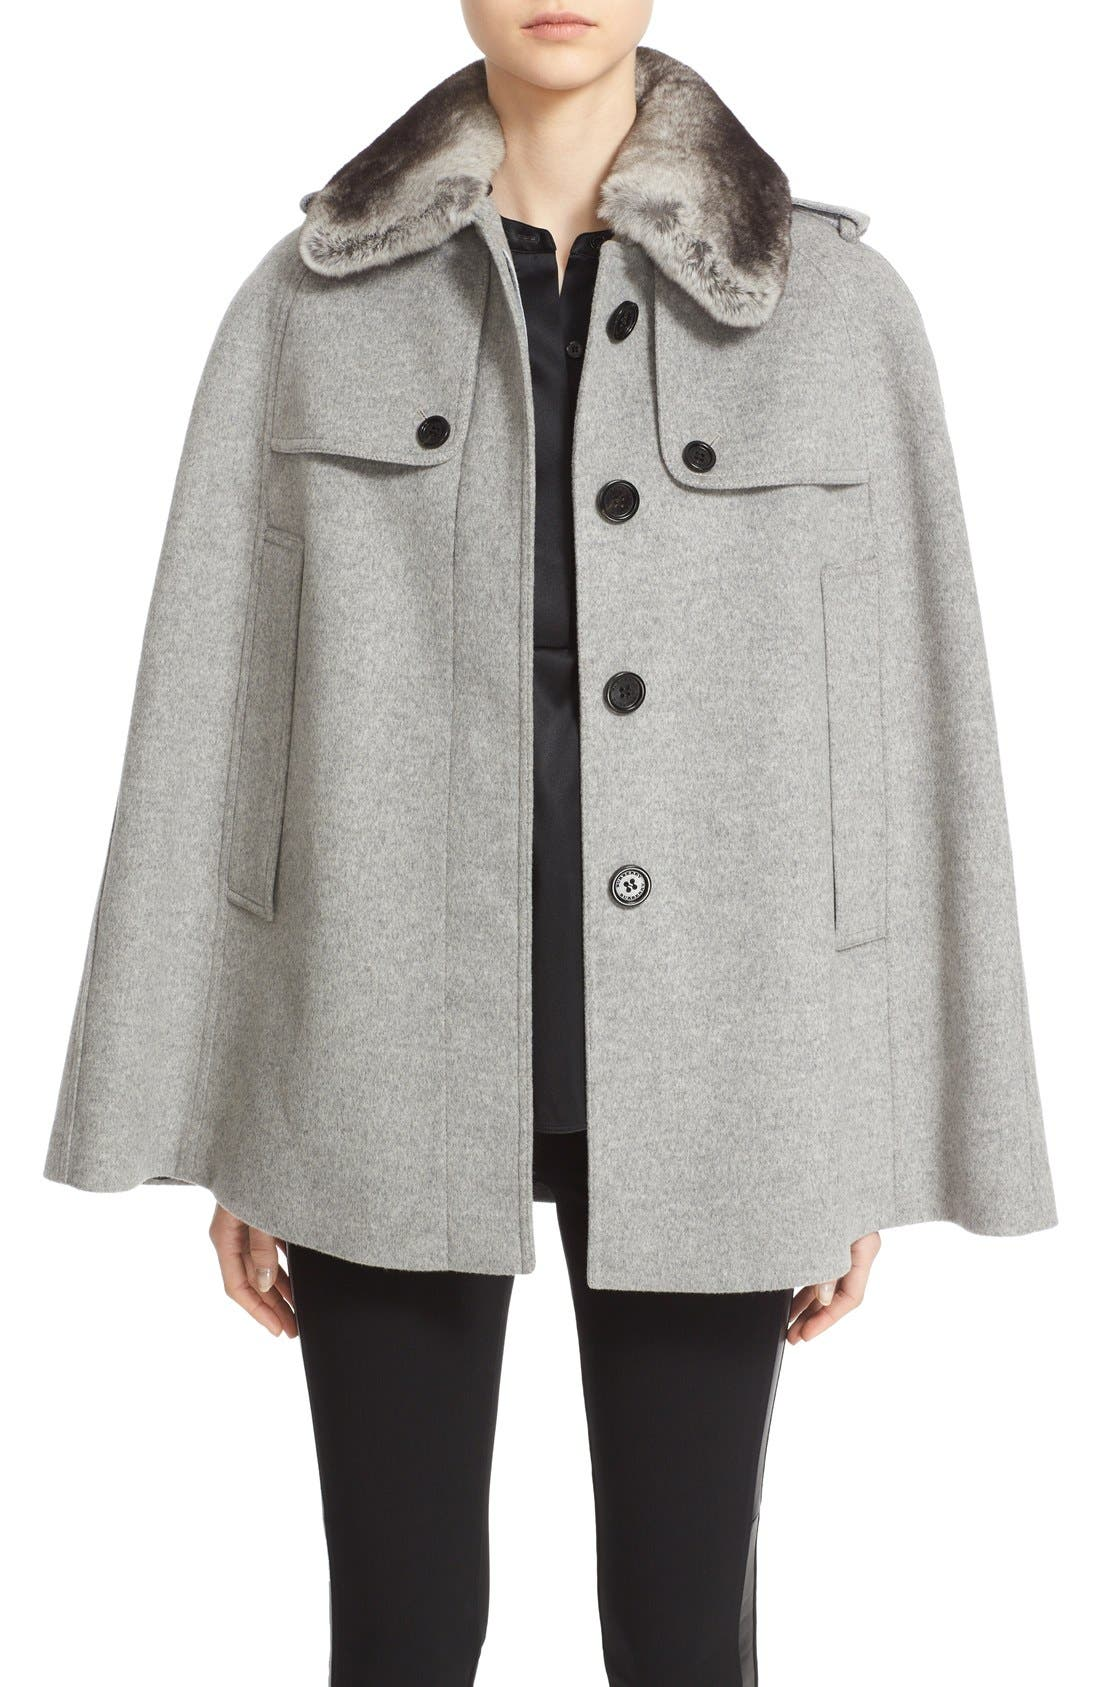 Alternate Image 1 Selected - Burberry 'Wolseley' Wool & Cashmere Trench Cape with Removable Genuine Rabbit Fur Collar